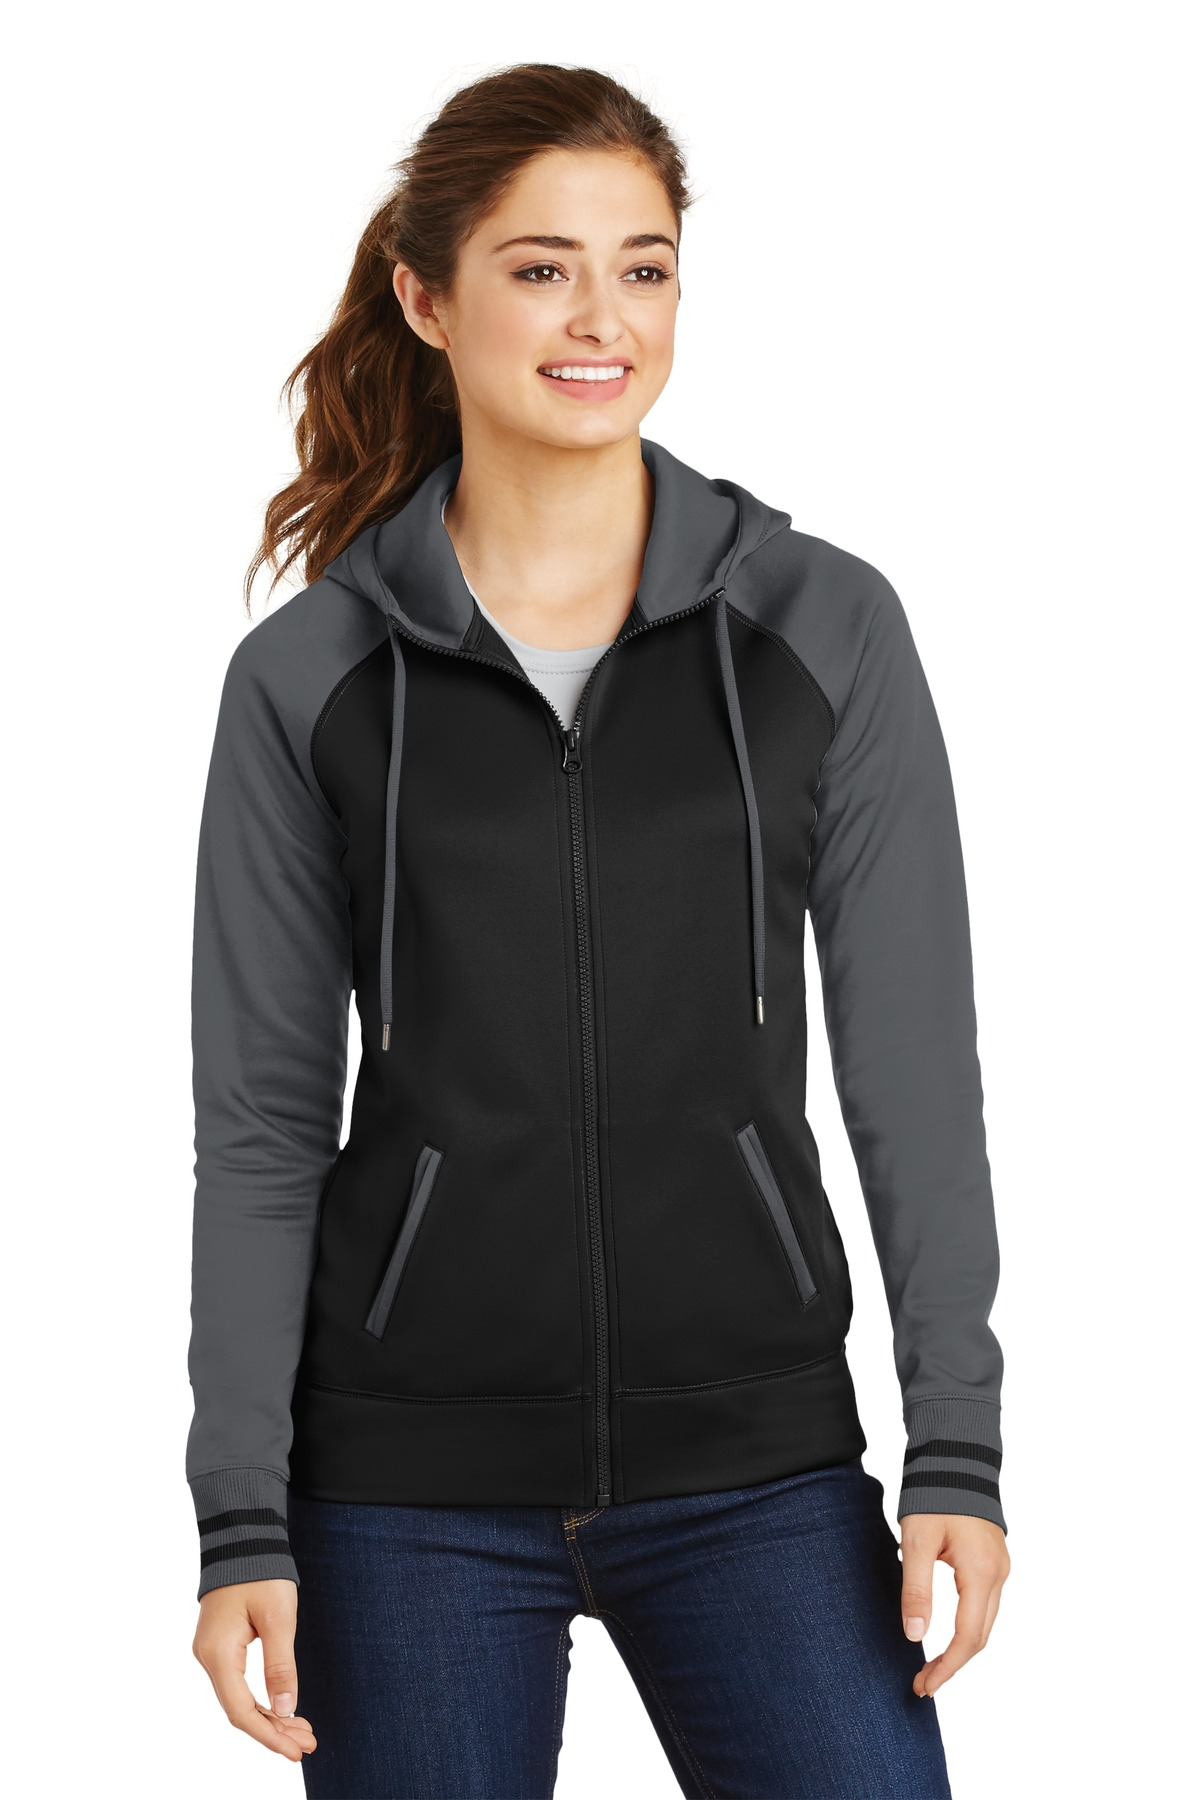 Sport-Tek ®  Ladies Sport-Wick ®  Varsity Fleece Full-Zip Hooded Jacket. LST236 - Black/ Dark Smoke Grey